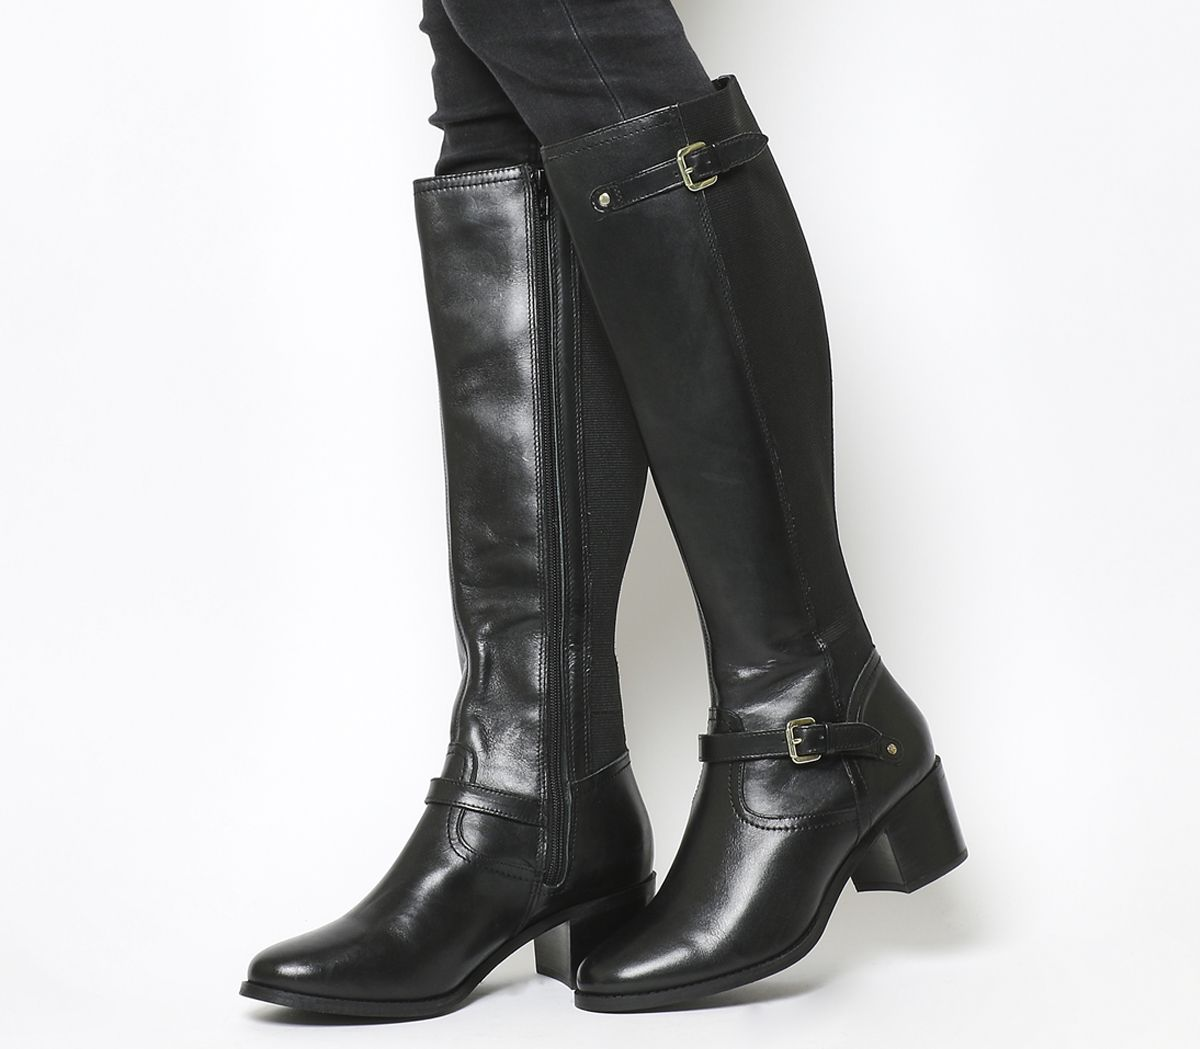 e1028baa2571 Office Kennedy Mid Heel Riding Boots Black Leather - Knee Boots